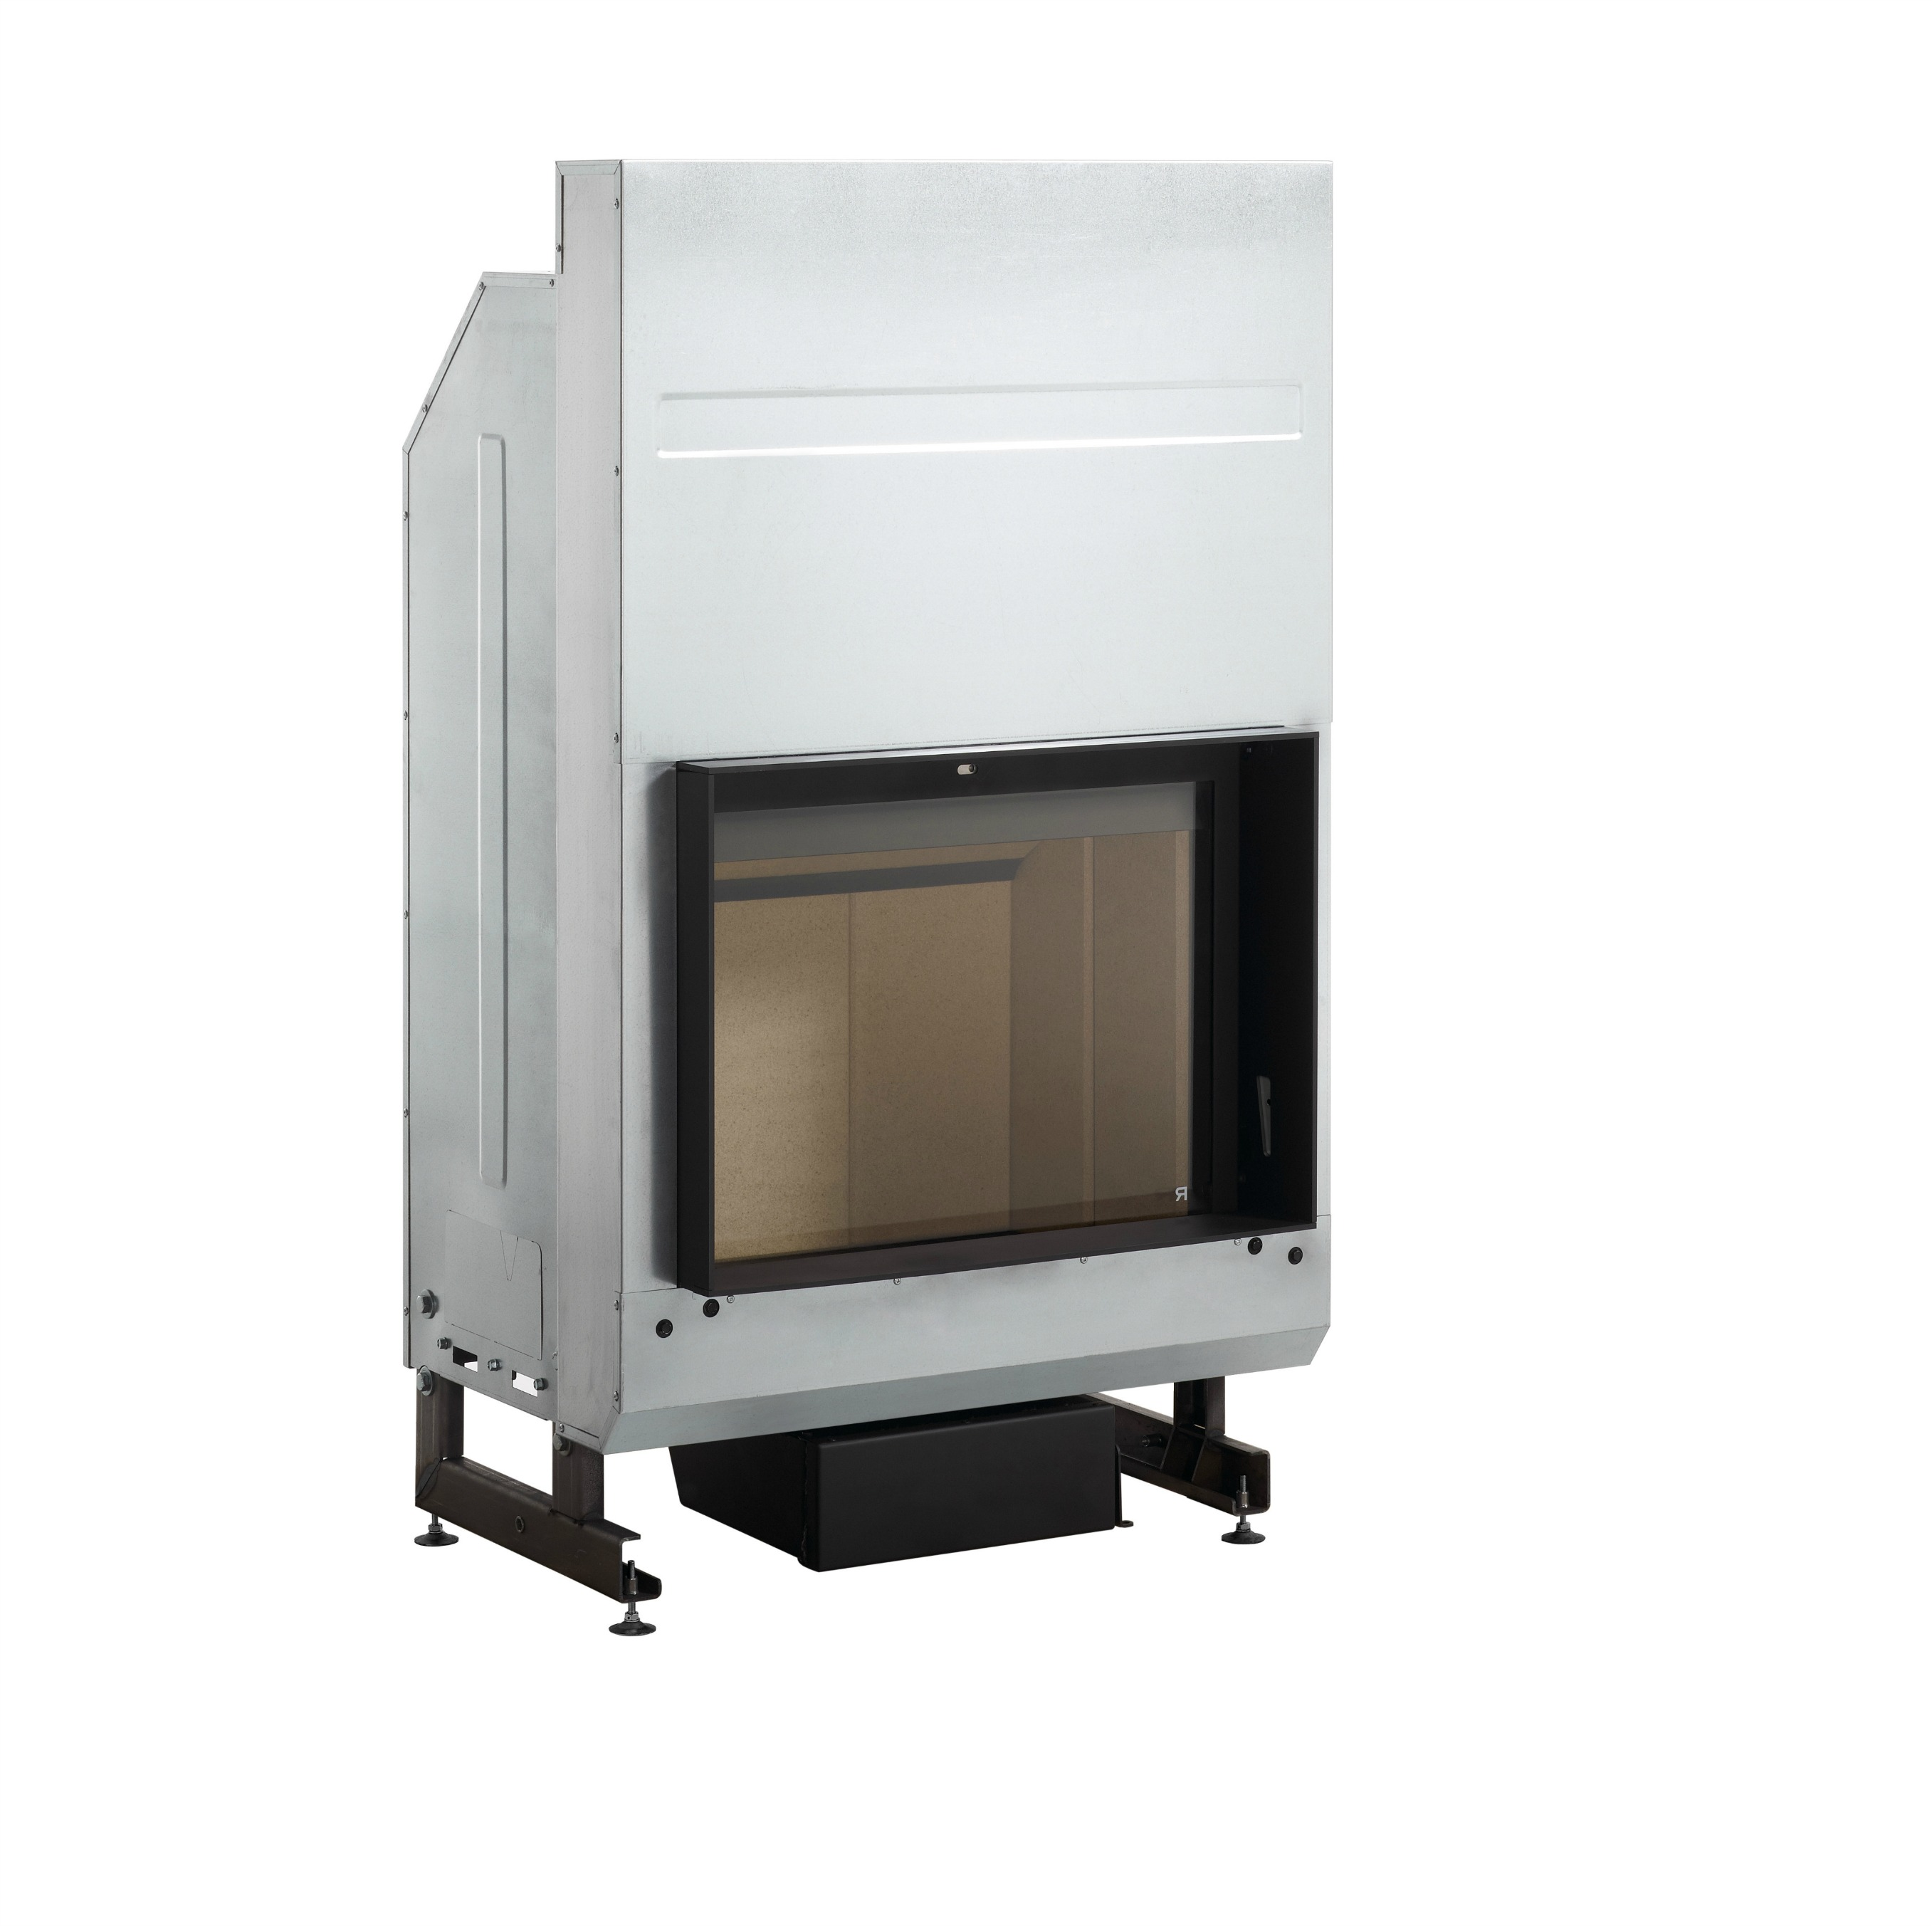 Rocal G300 Insert Stove